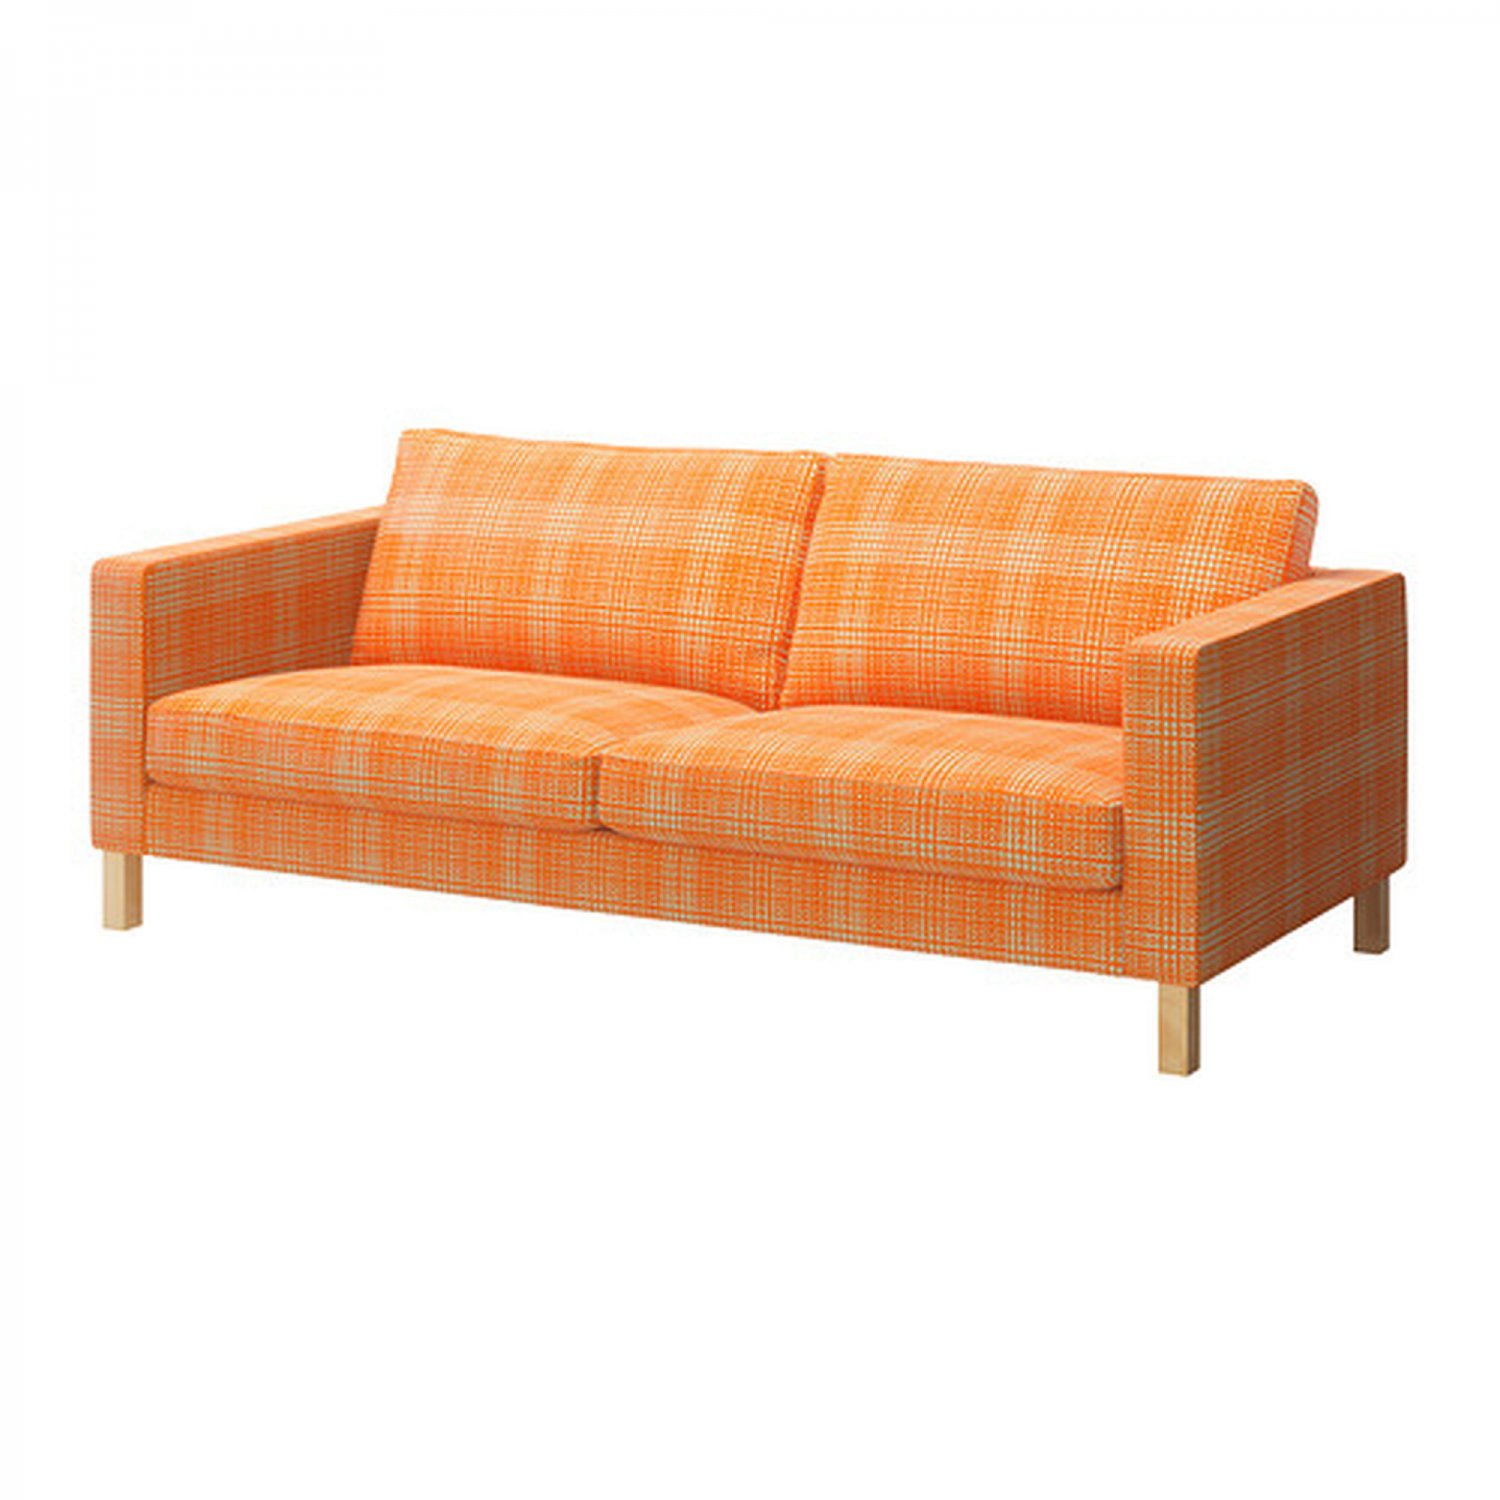 Ikea KARLSTAD 3 Seat Sofa SLIPCOVER Cover HUSIE ORANGE Print